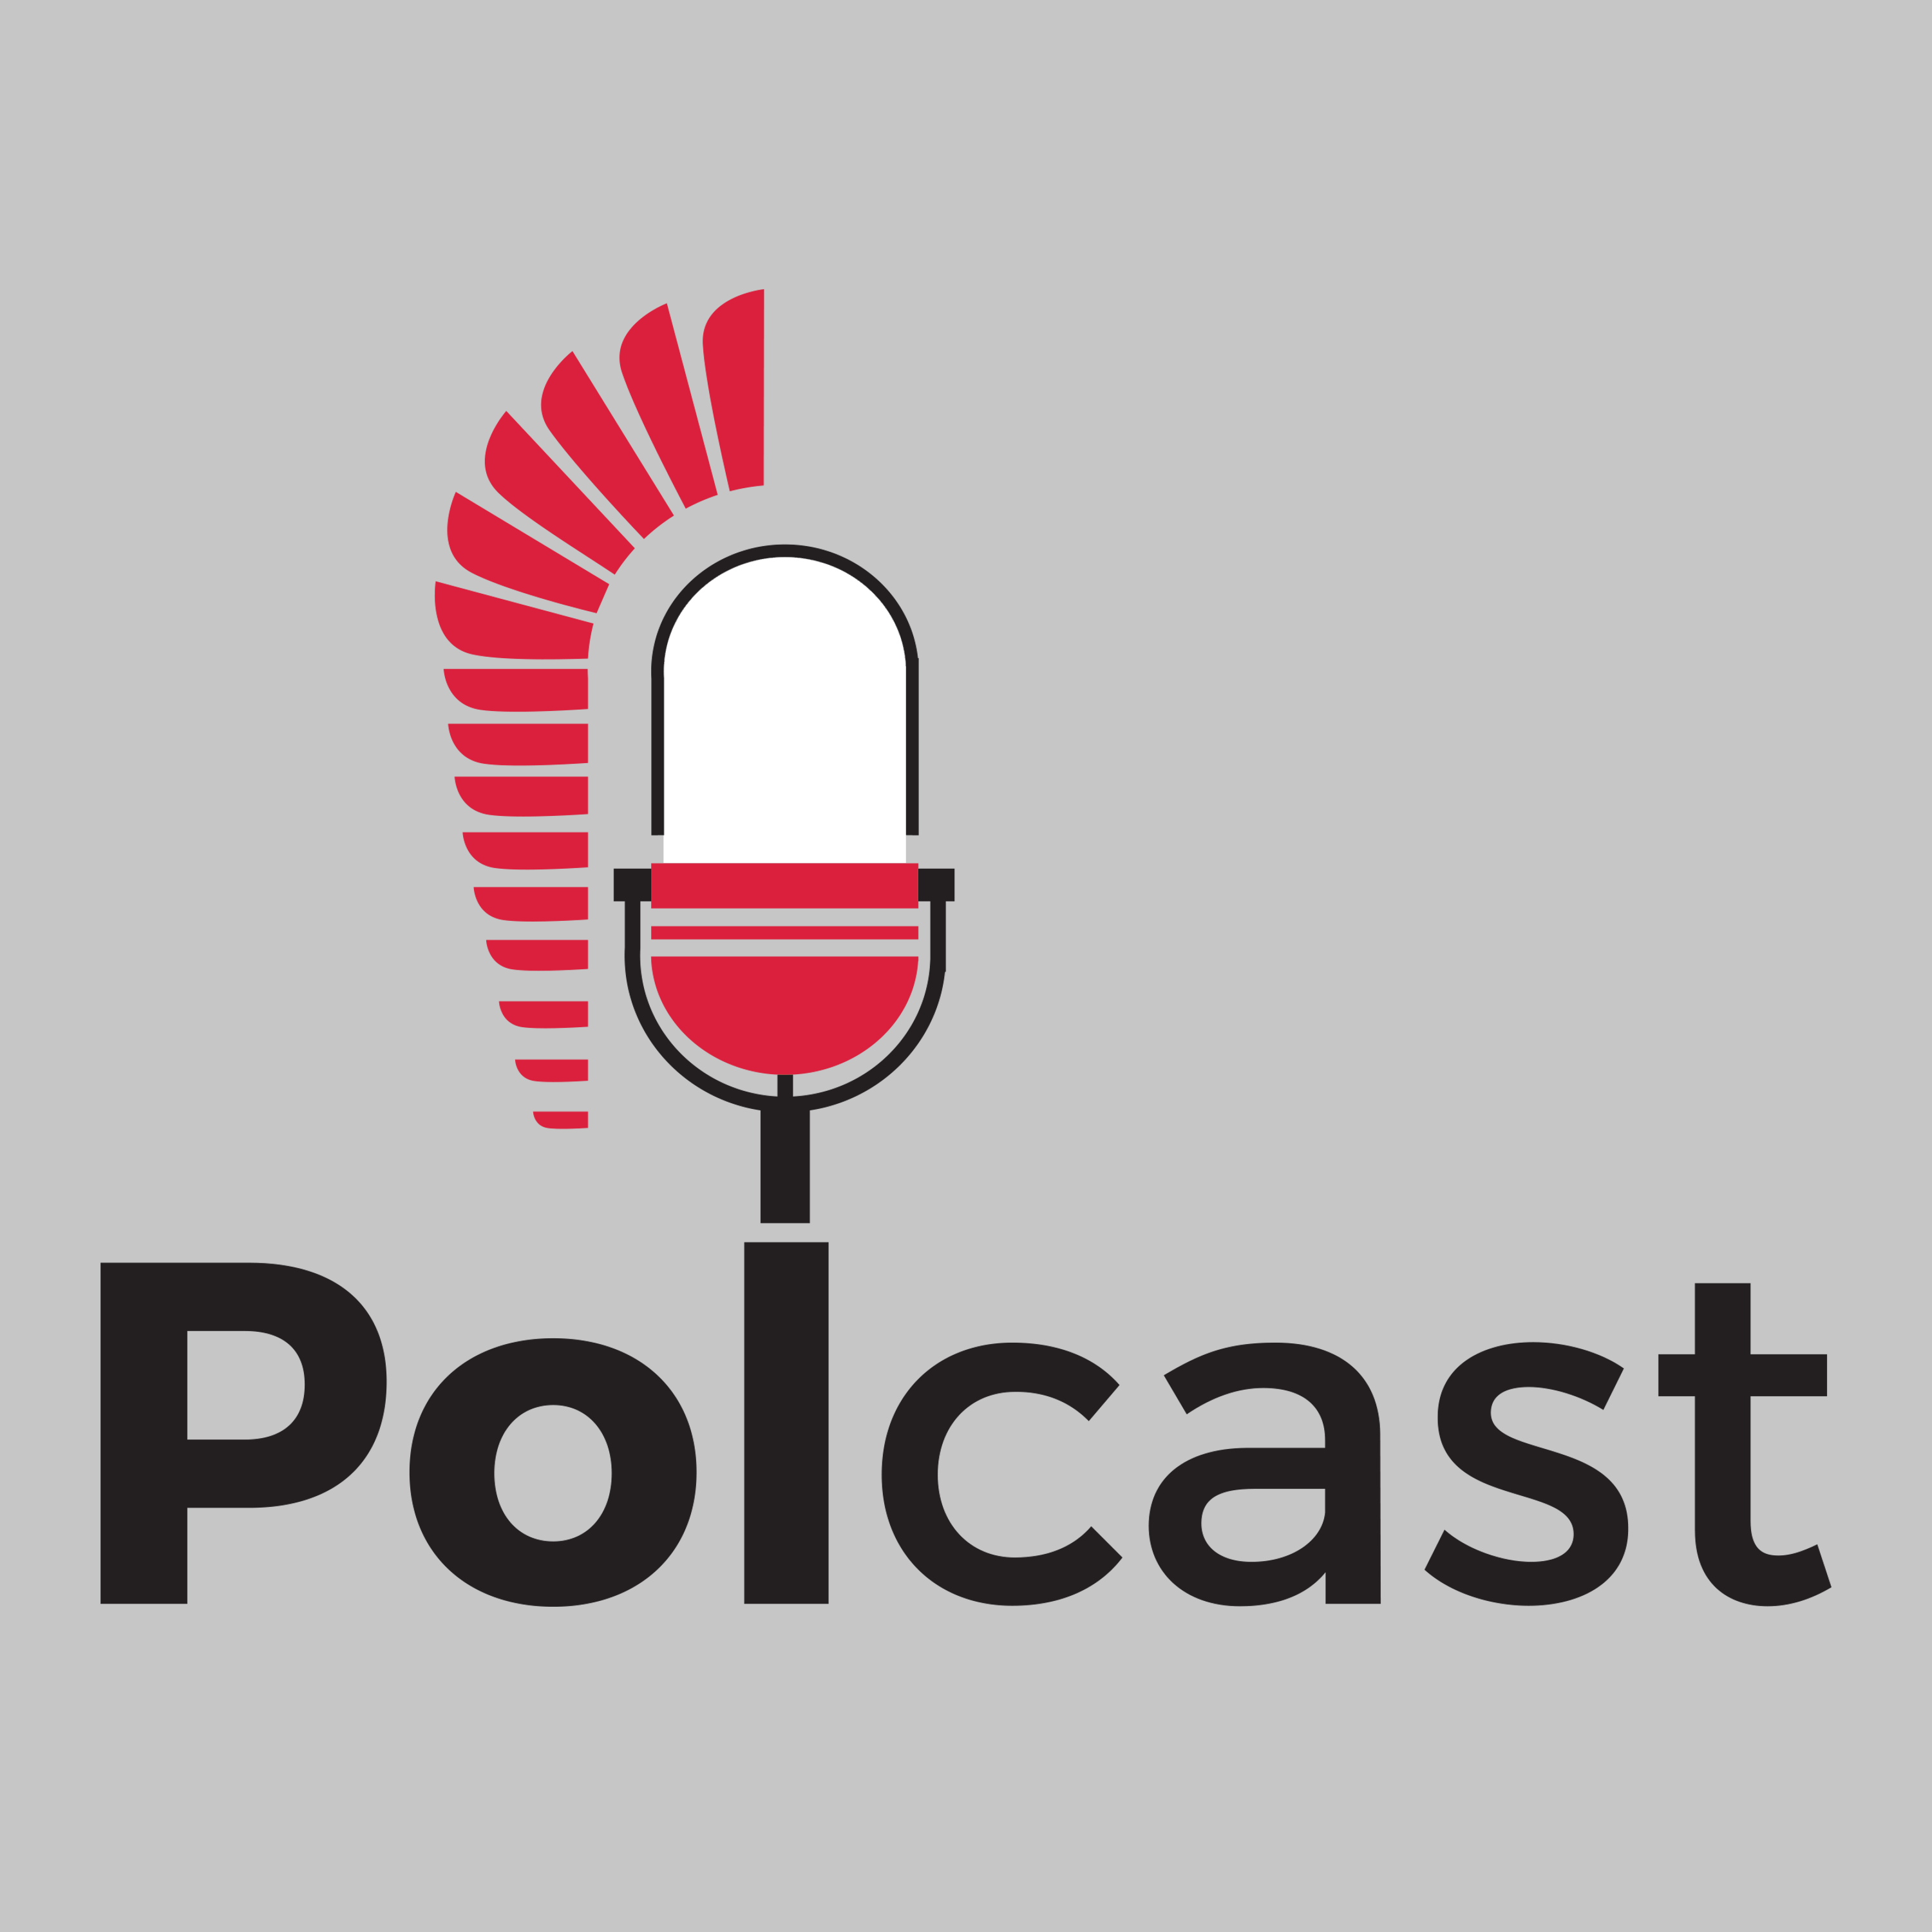 POLcast episode 21